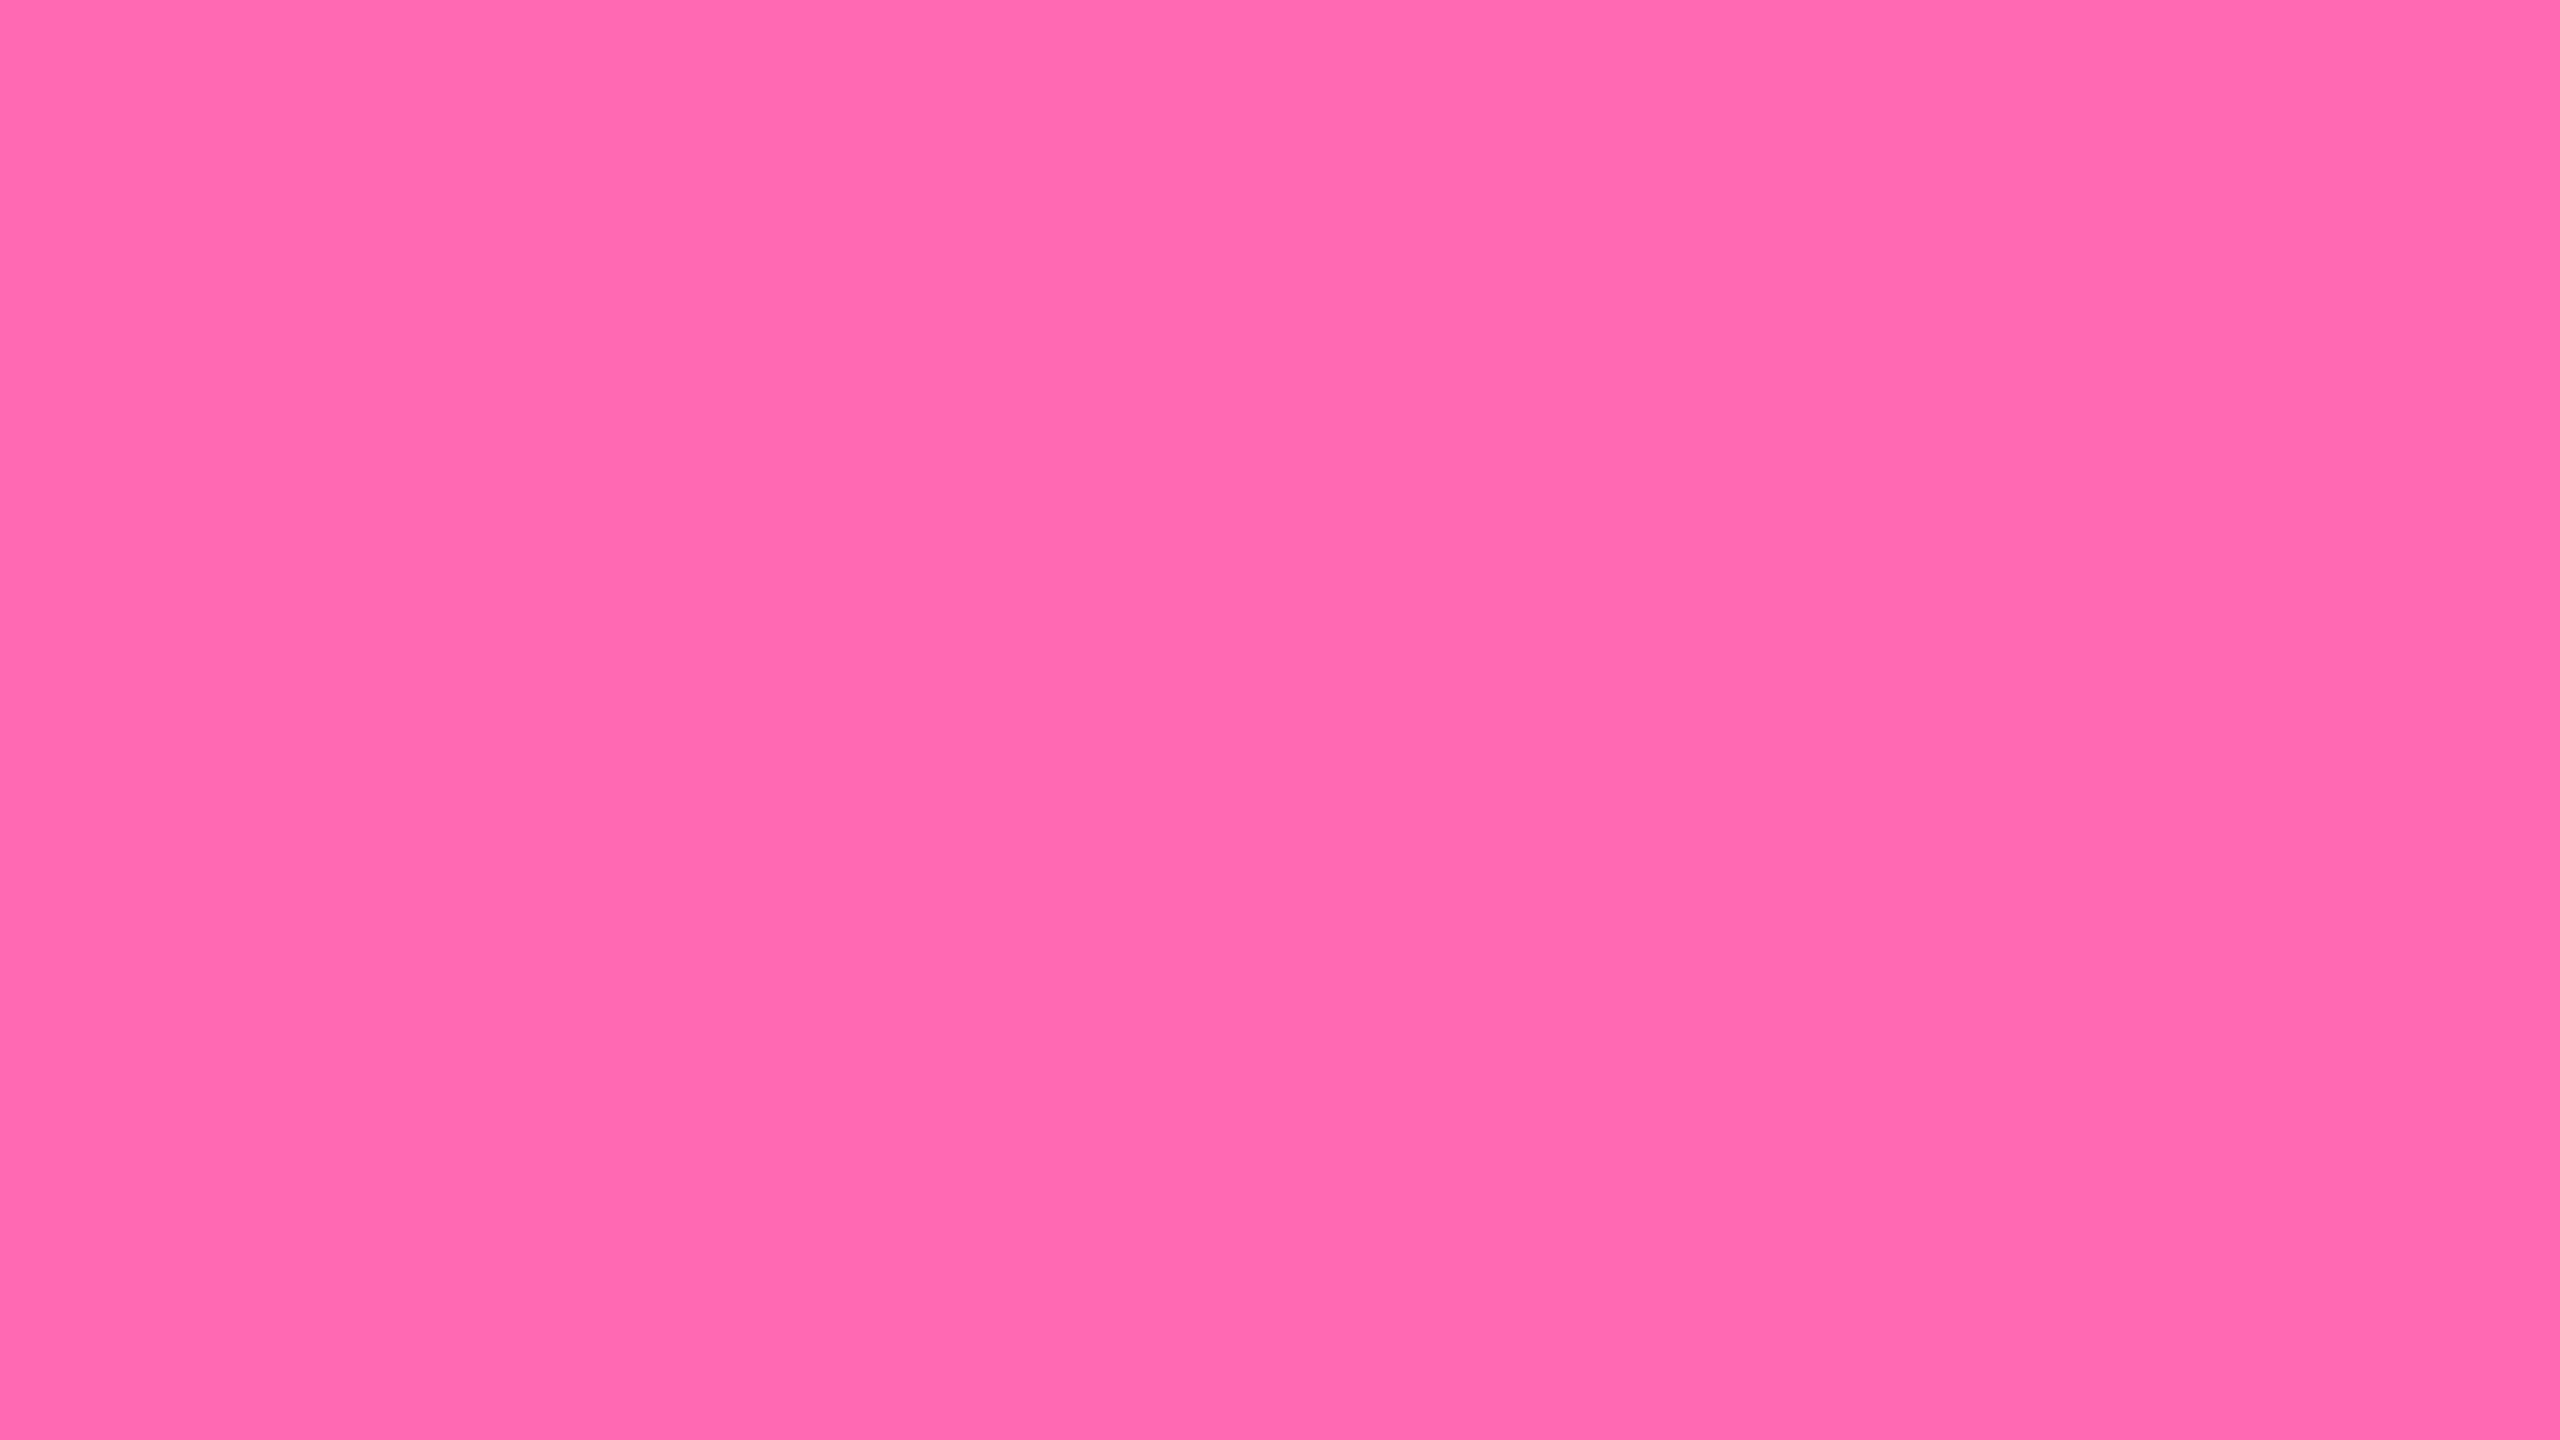 Color Pink Background 56 Images